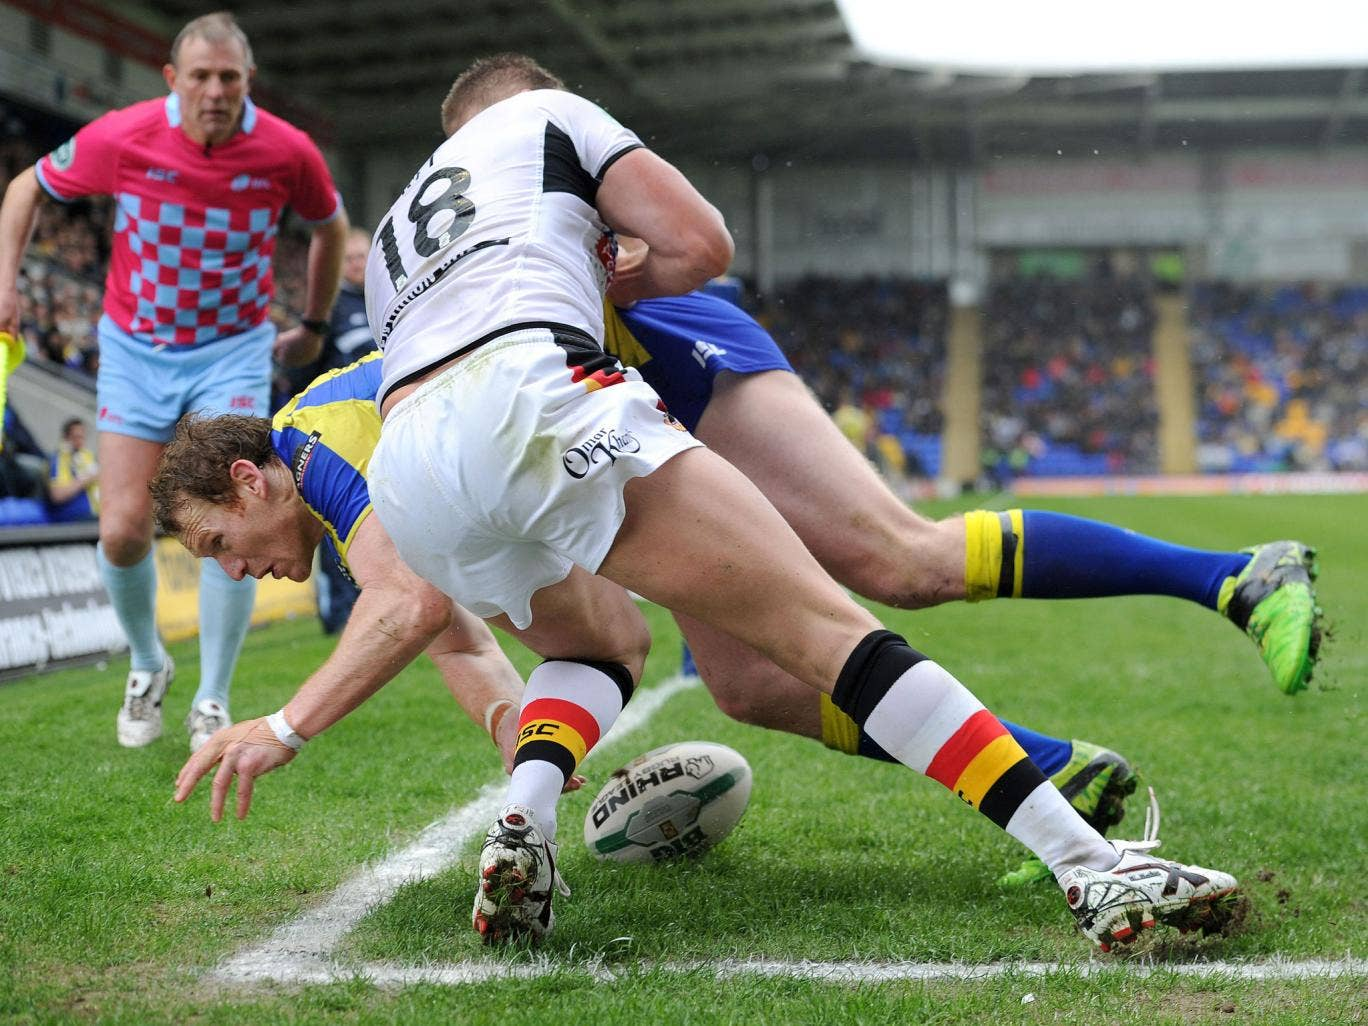 Warrington Wolves' Joel Monaghan goes over for a try past Bradford Bulls Michael Platt during the Super League match at the Halliwell Jones Stadium, Warrington